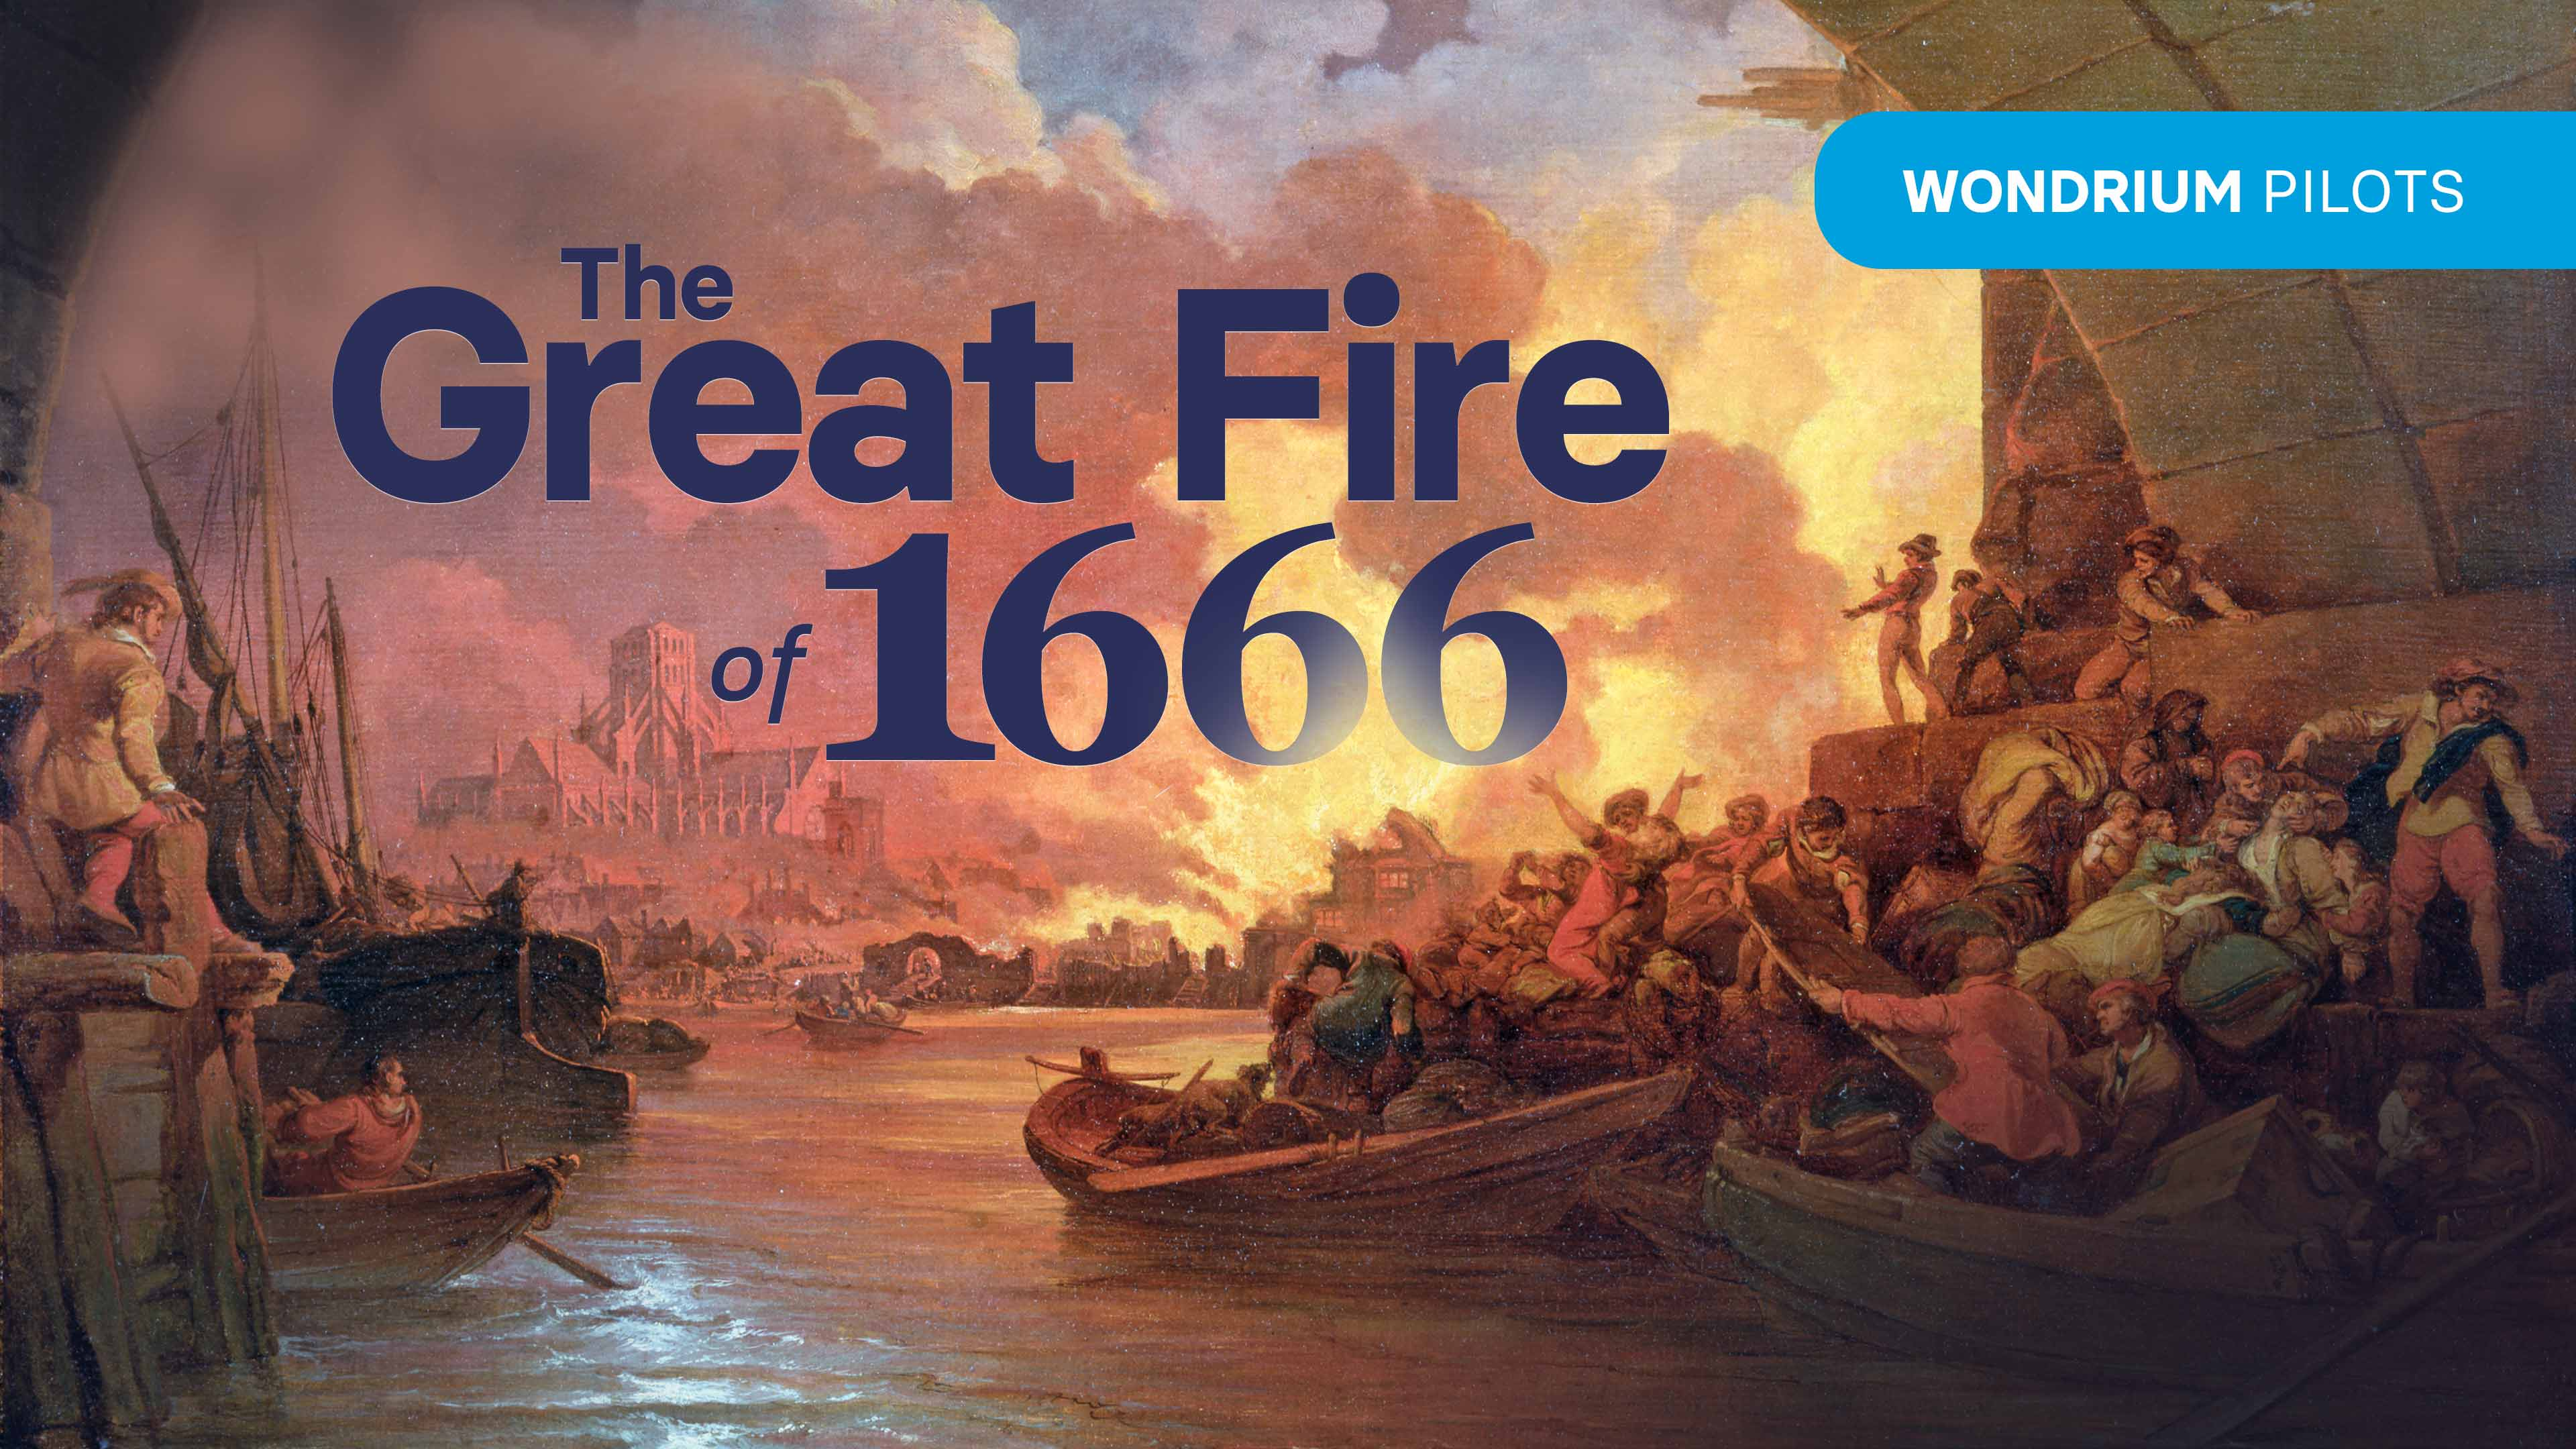 The Great Fire of 1666